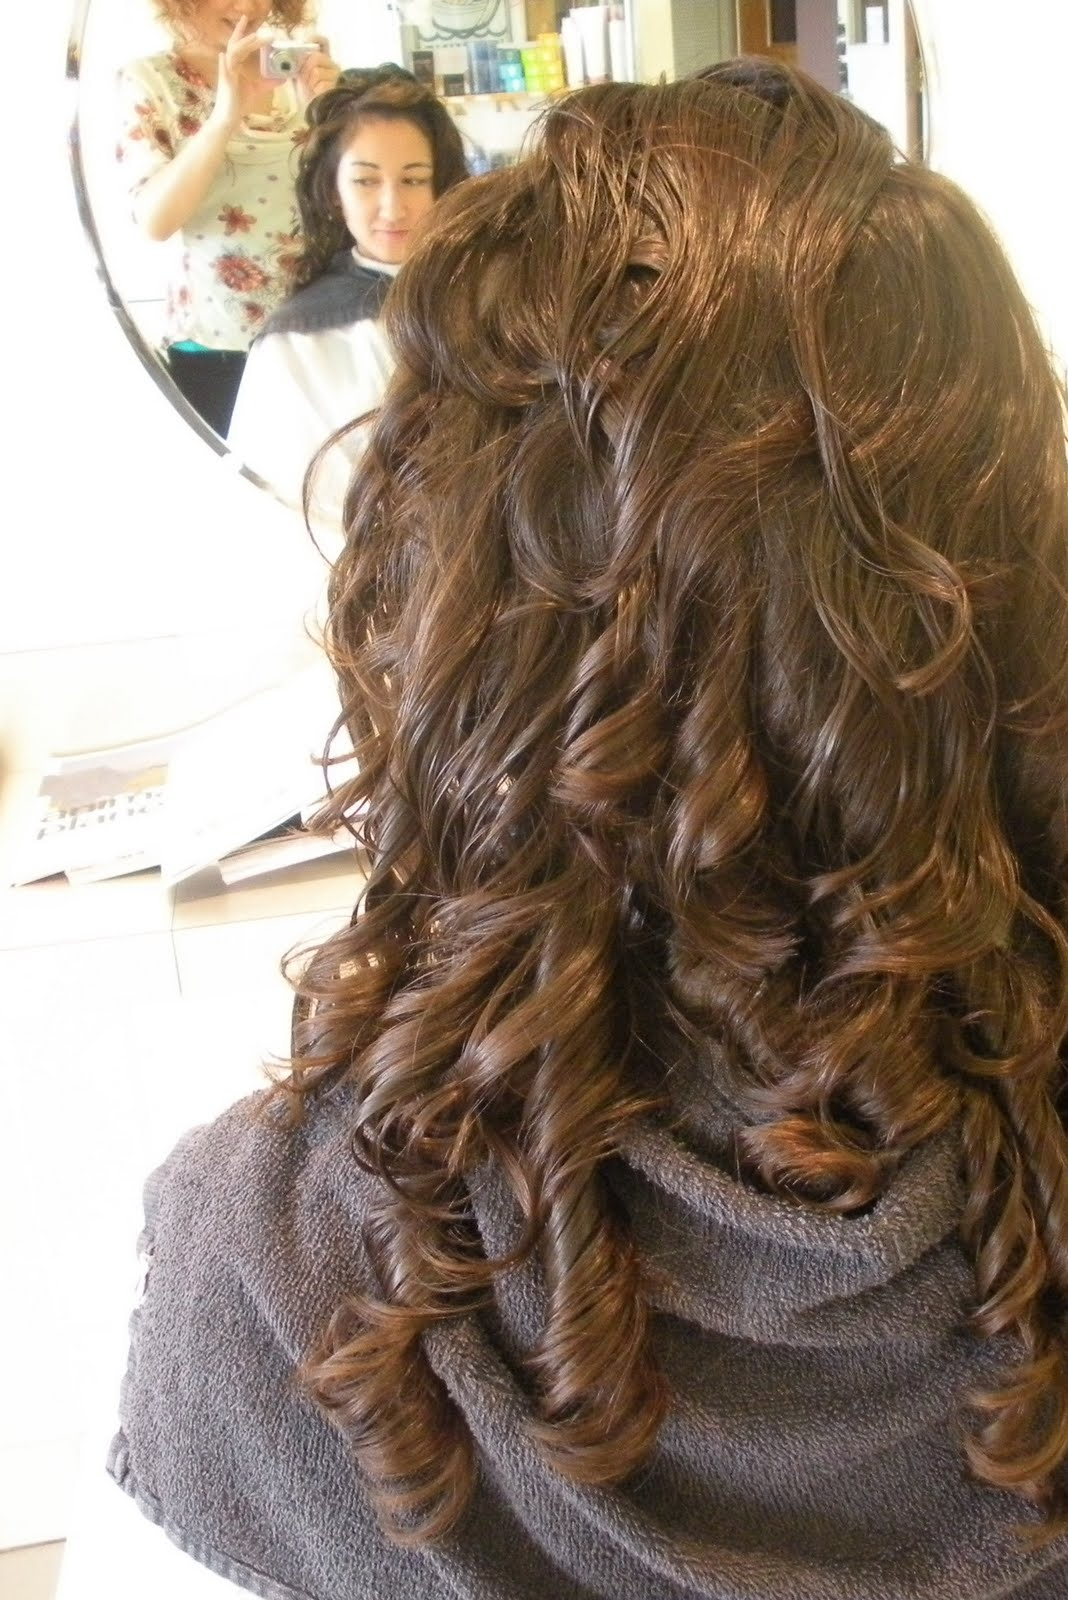 Hair Salon Perm : ... perm more perm wavy big curl perm curl perms hair perm hair